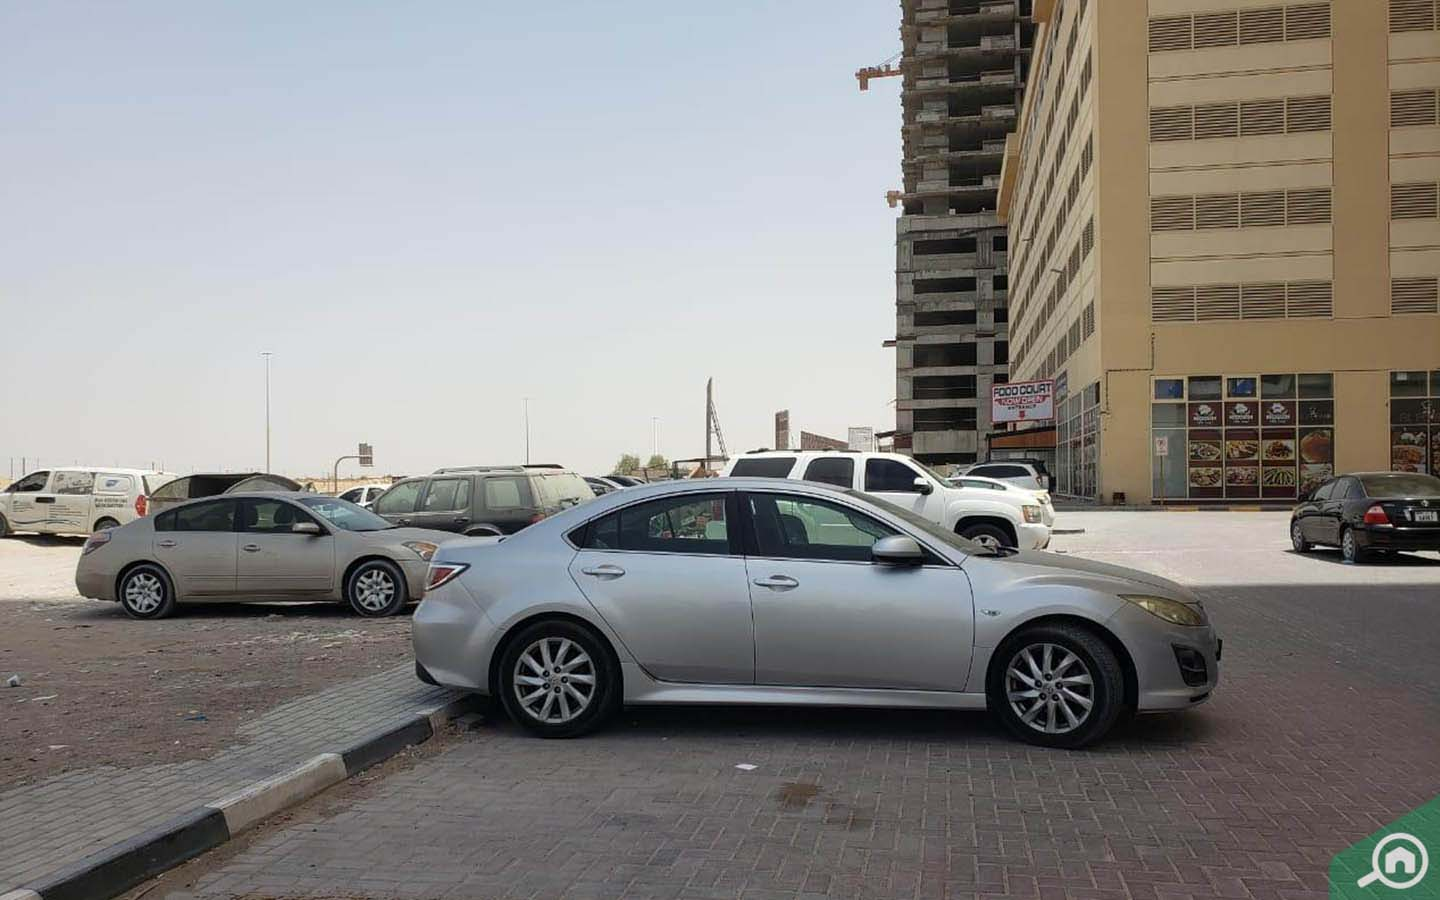 Parking in Emirates City